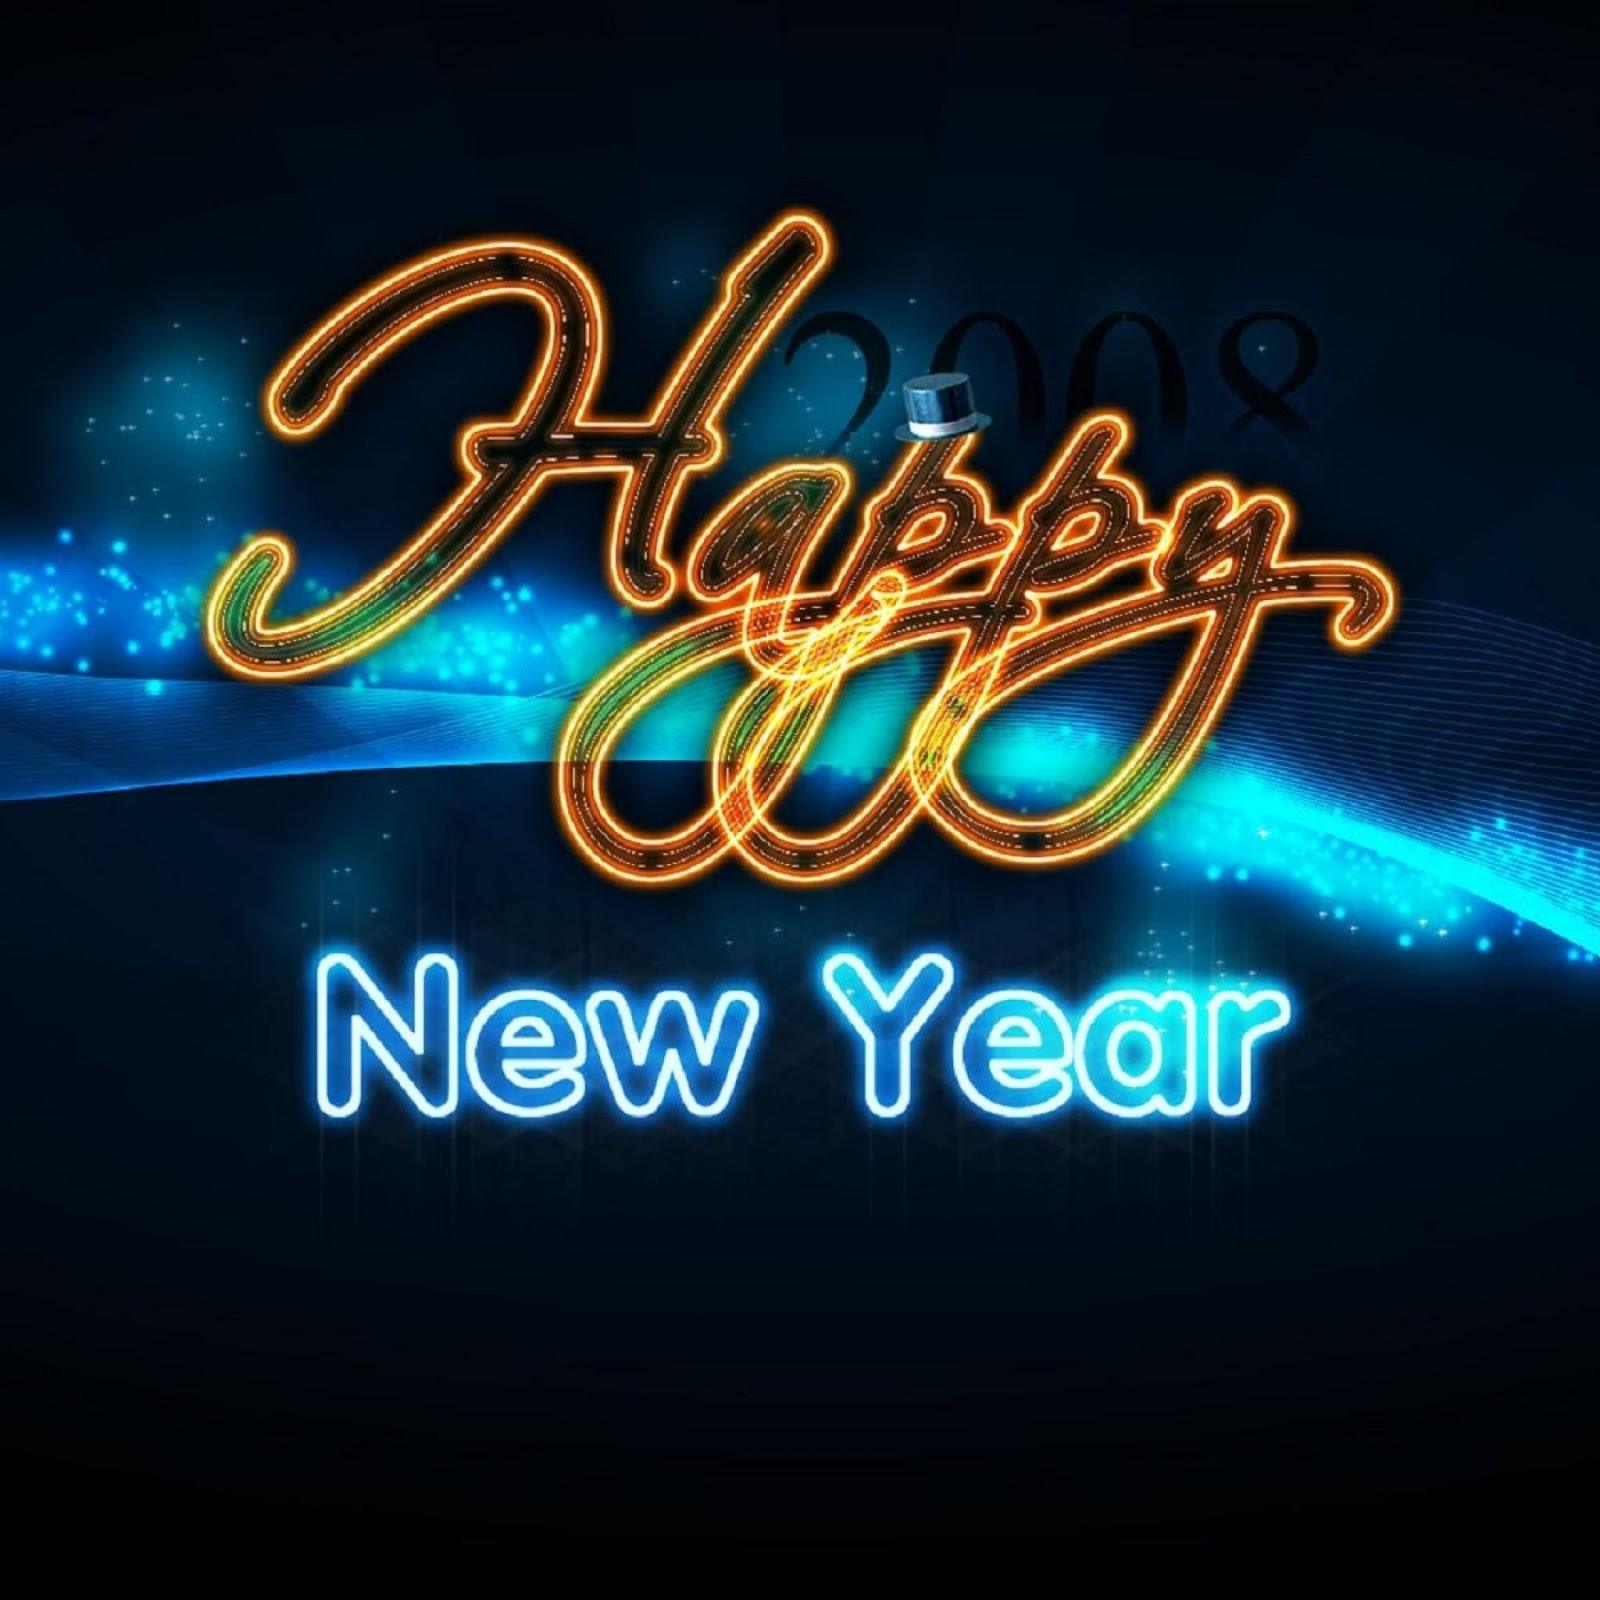 free new year 2013 ipad wallpaper 06